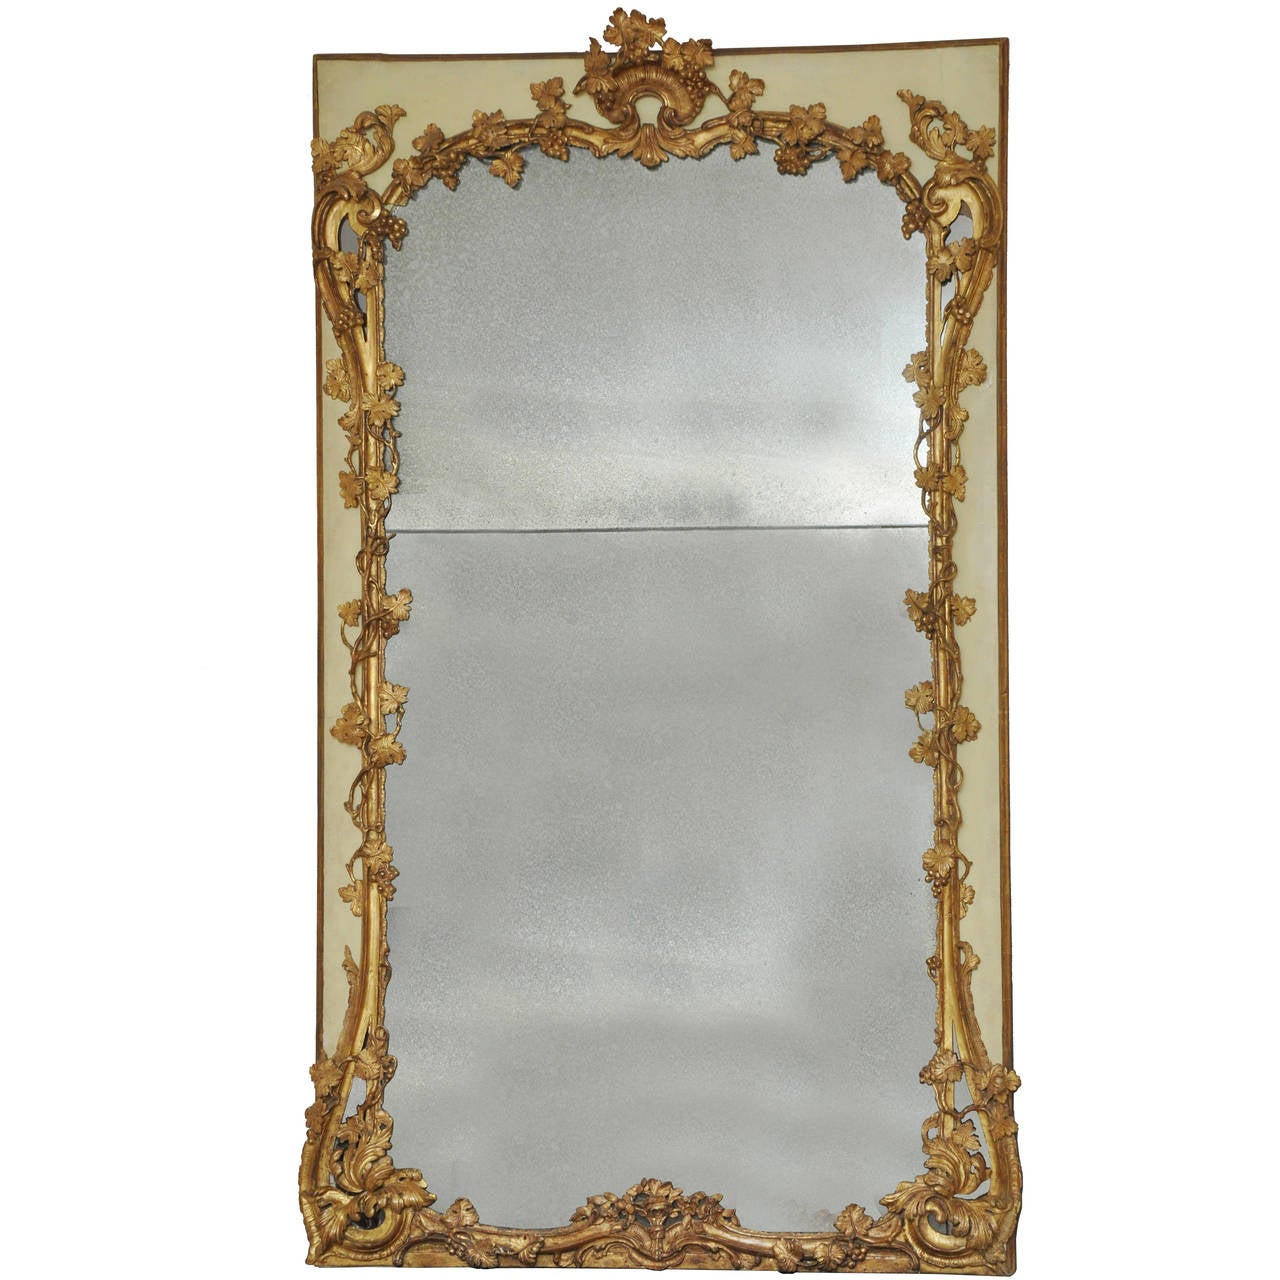 18th century french trumeau mirror provence for sale at 1stdibs. Black Bedroom Furniture Sets. Home Design Ideas